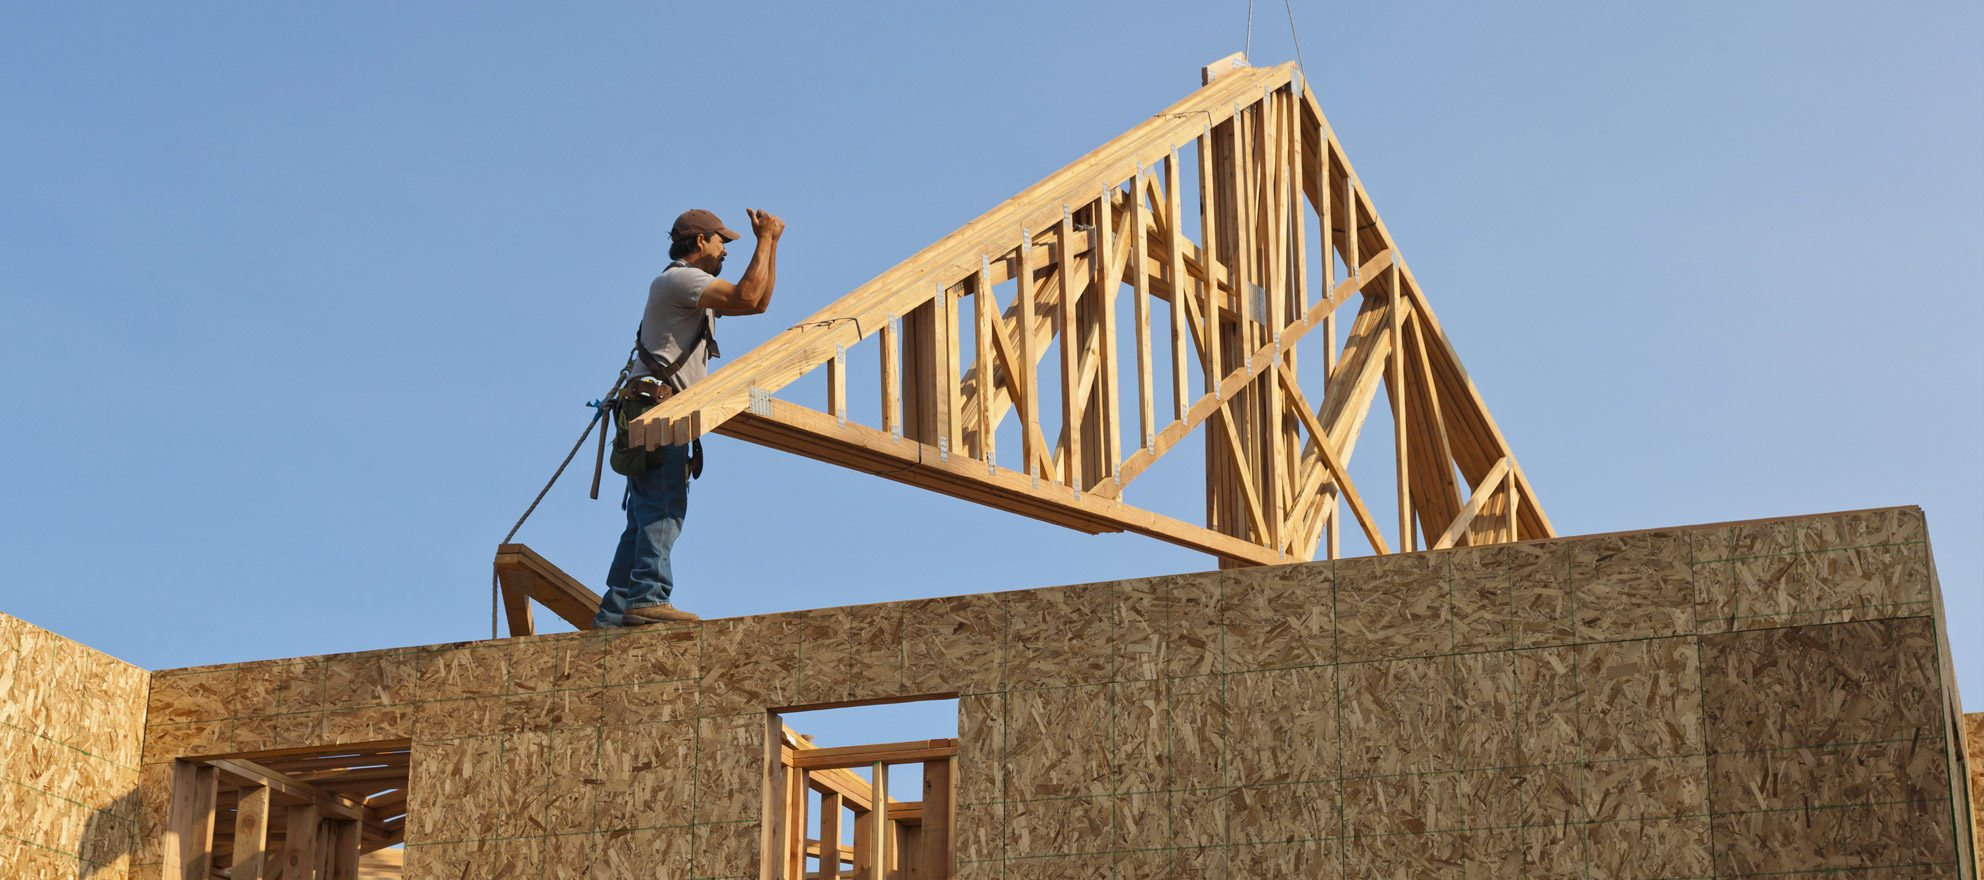 Builder confidence rises due to demand and limited supply: NAHB